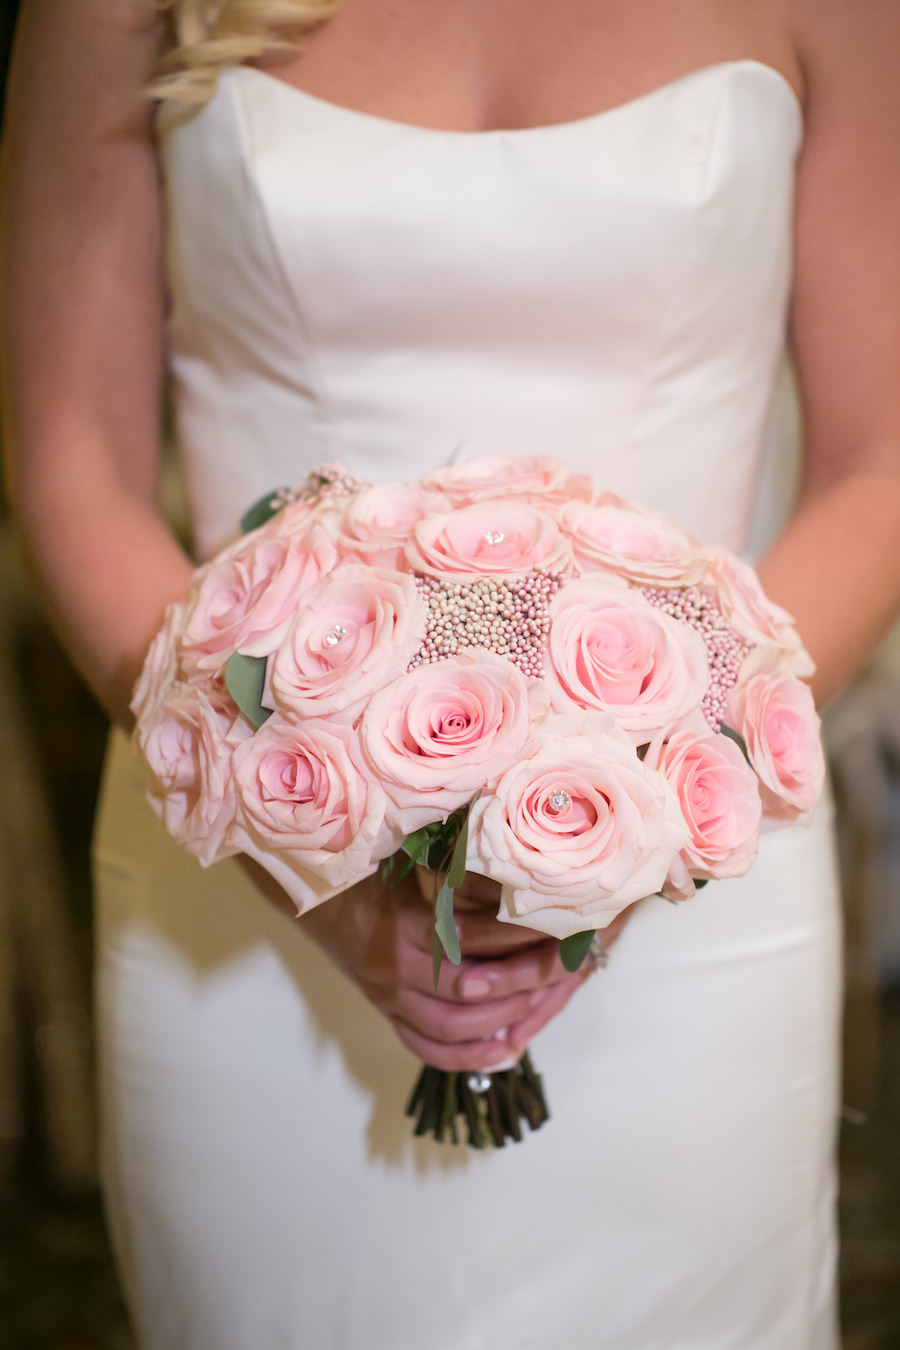 Blush Pink Rose Wedding Bouquet with Pear and Rhinestone Accents   Tampa Bay Wedding Florist Northside Florist   Wedding Photographer Carrie Wildes Photography